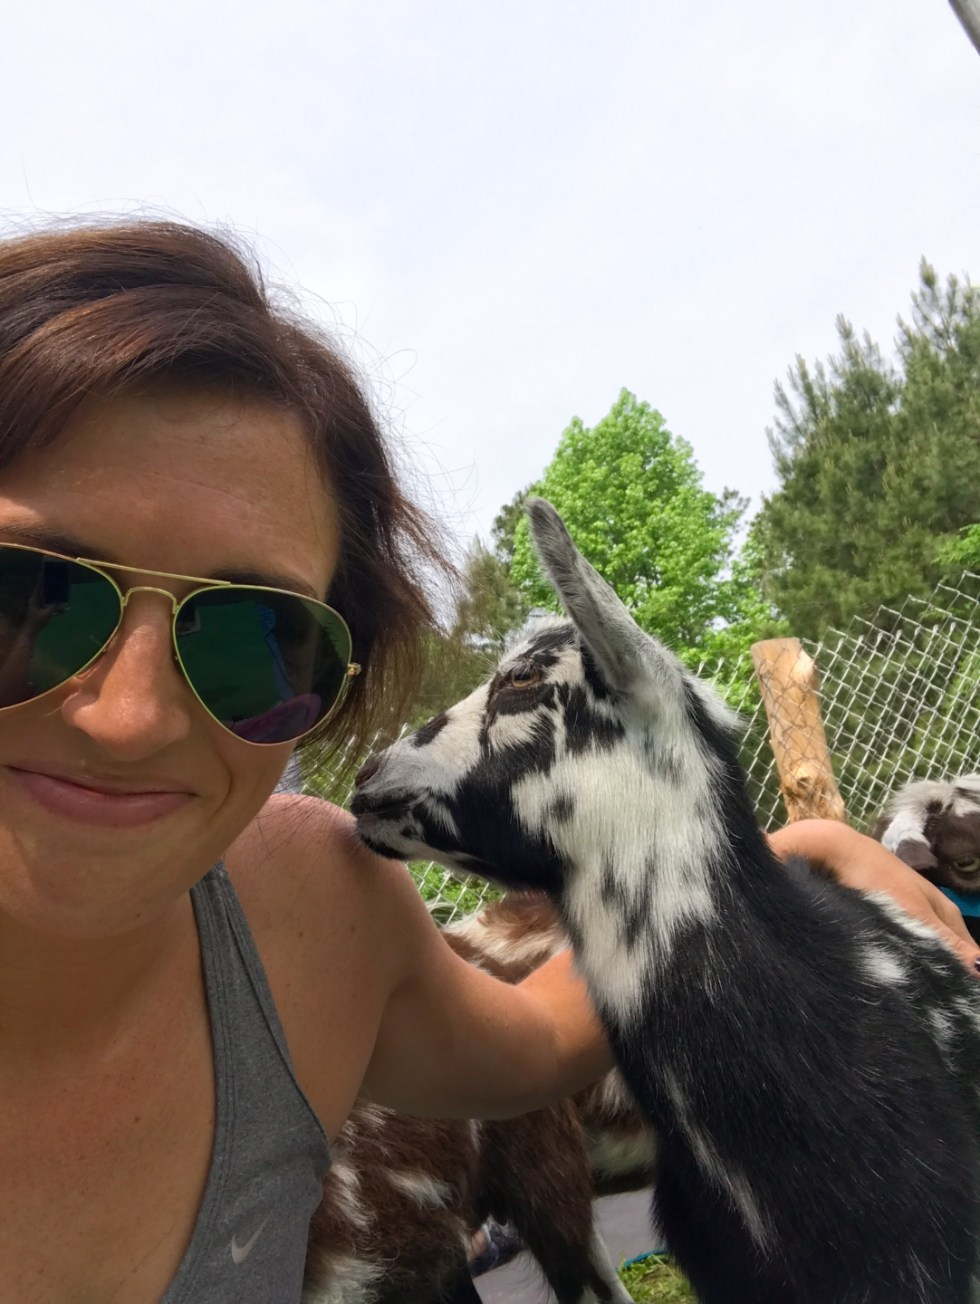 23 Awesome Things To Do in Durham - I'm Fixin' To - @imfixintoblog | Things to do in Durham by popular NC travel blog, I'm Fixin' To: image of a woman standing next to a black and white kid goat.